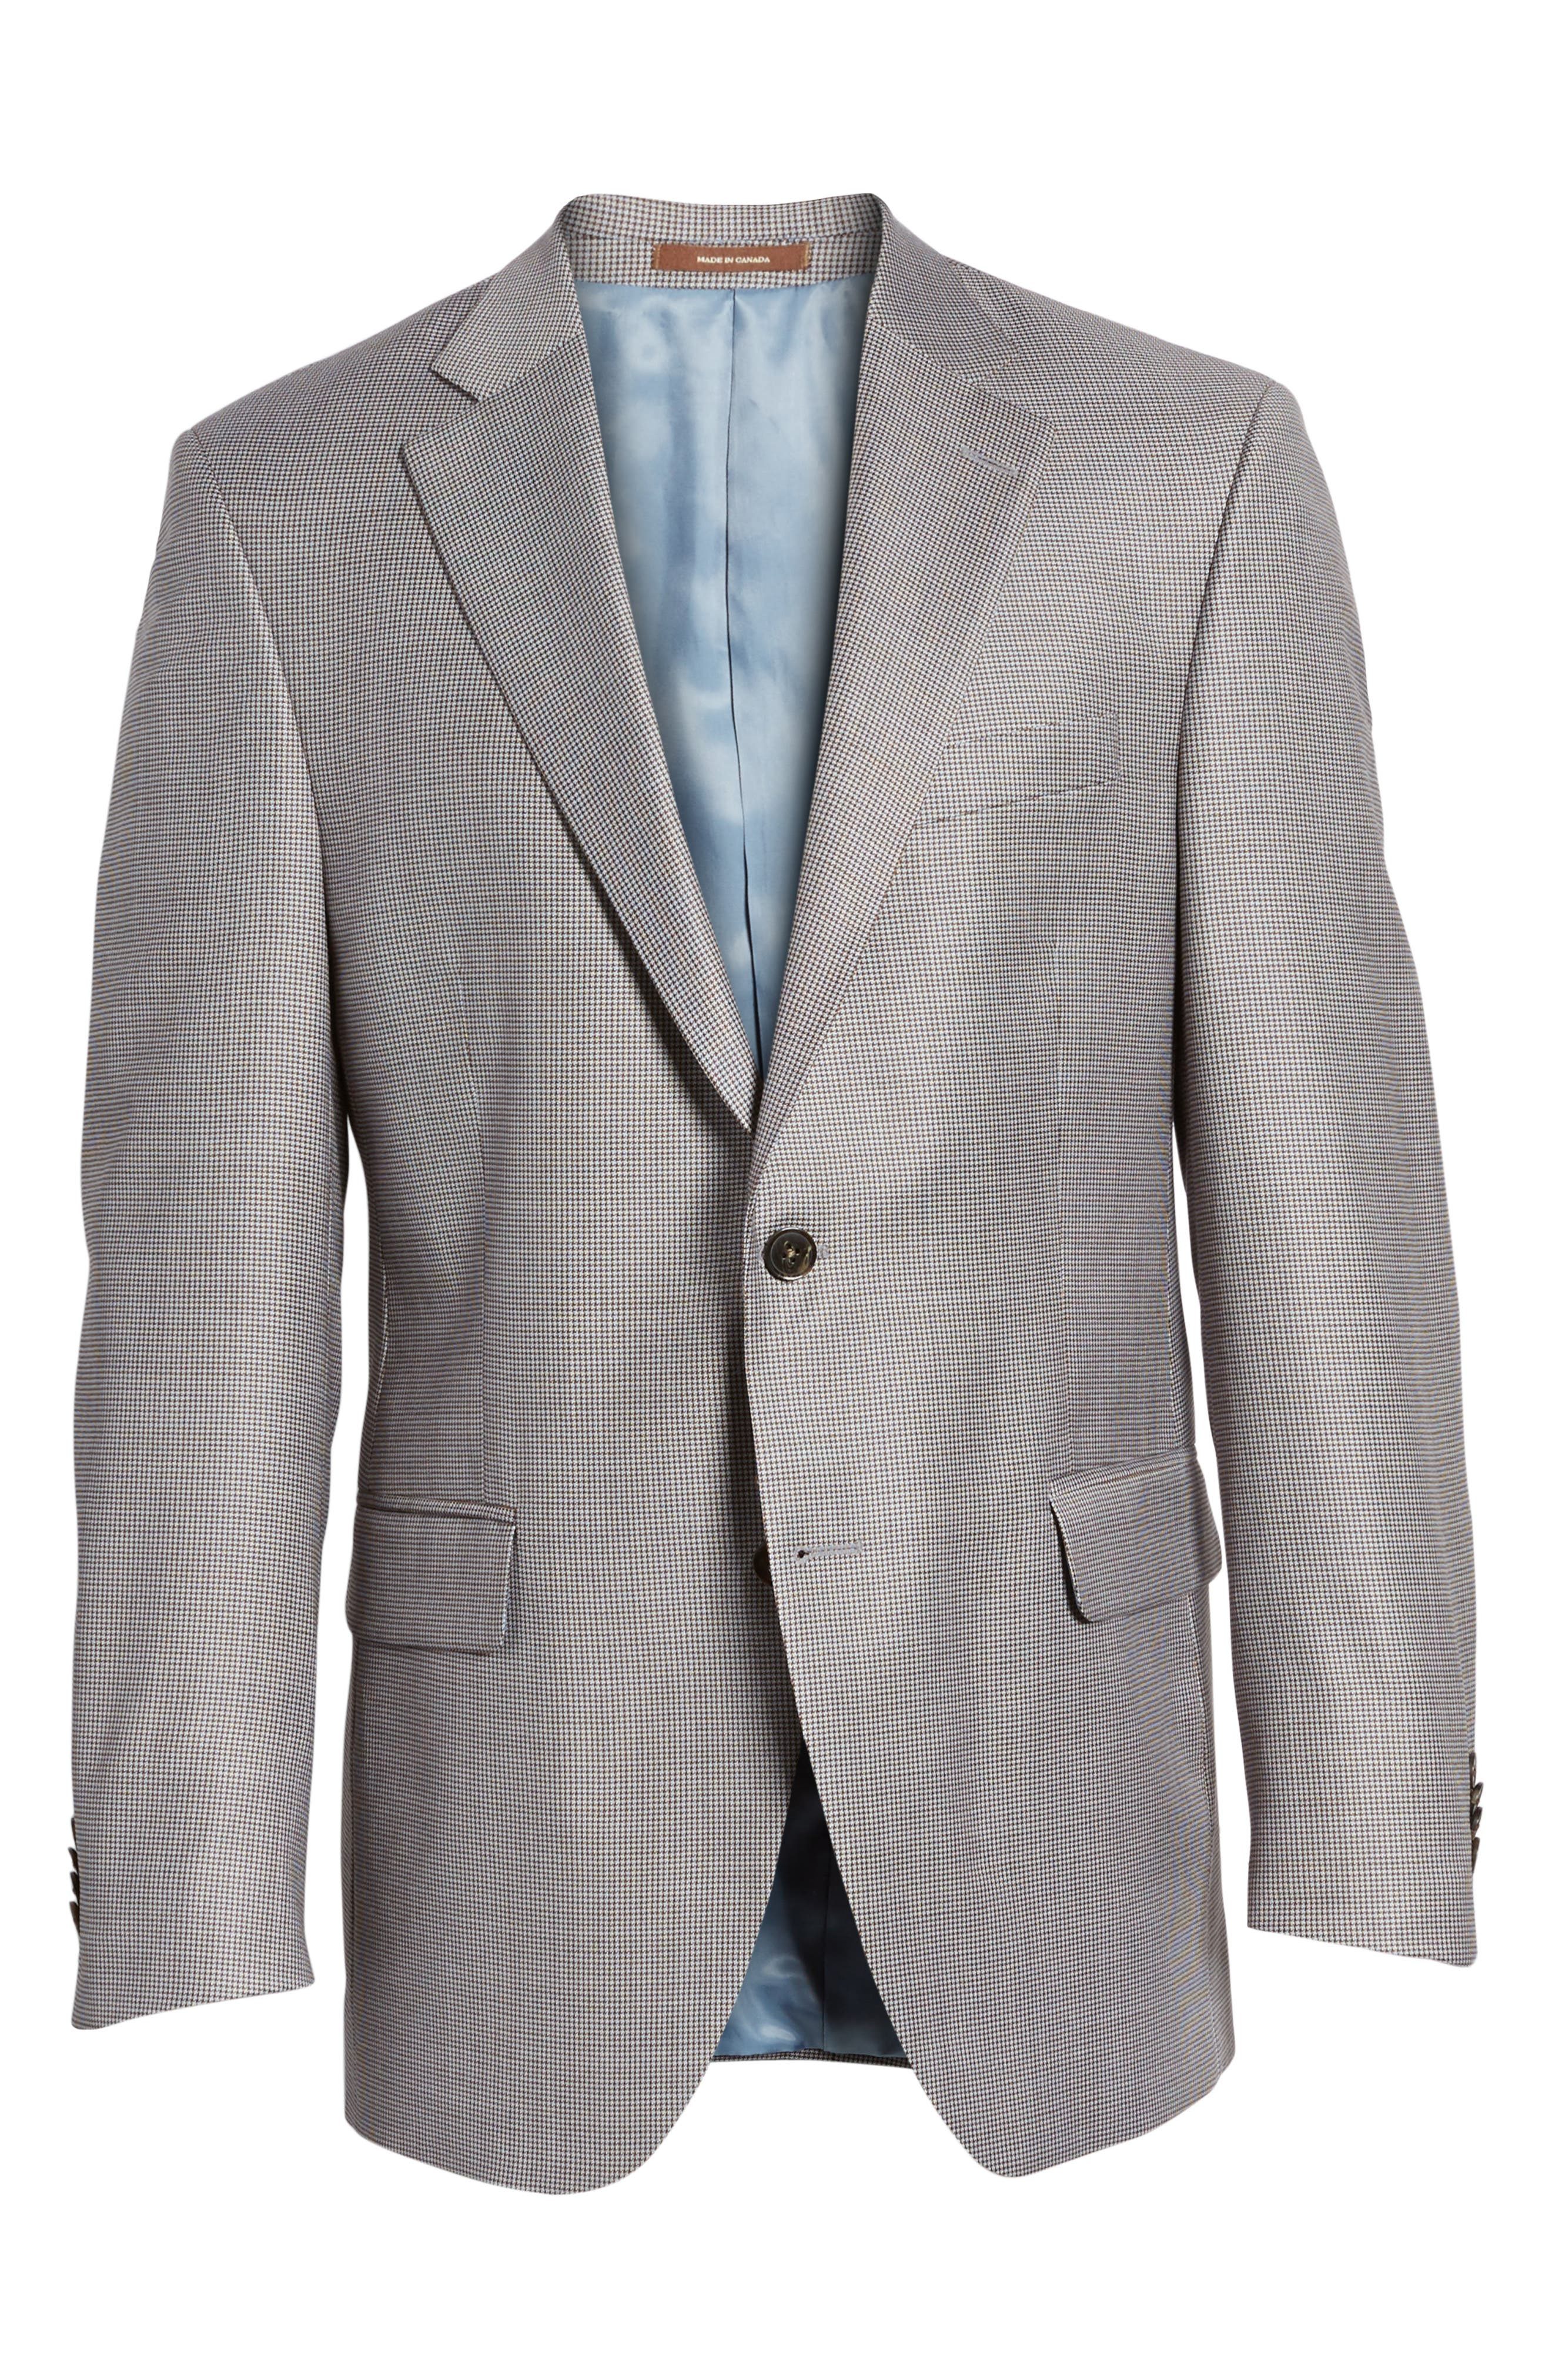 Classic Fit Houndstooth Wool Sport Coat,                             Alternate thumbnail 5, color,                             420